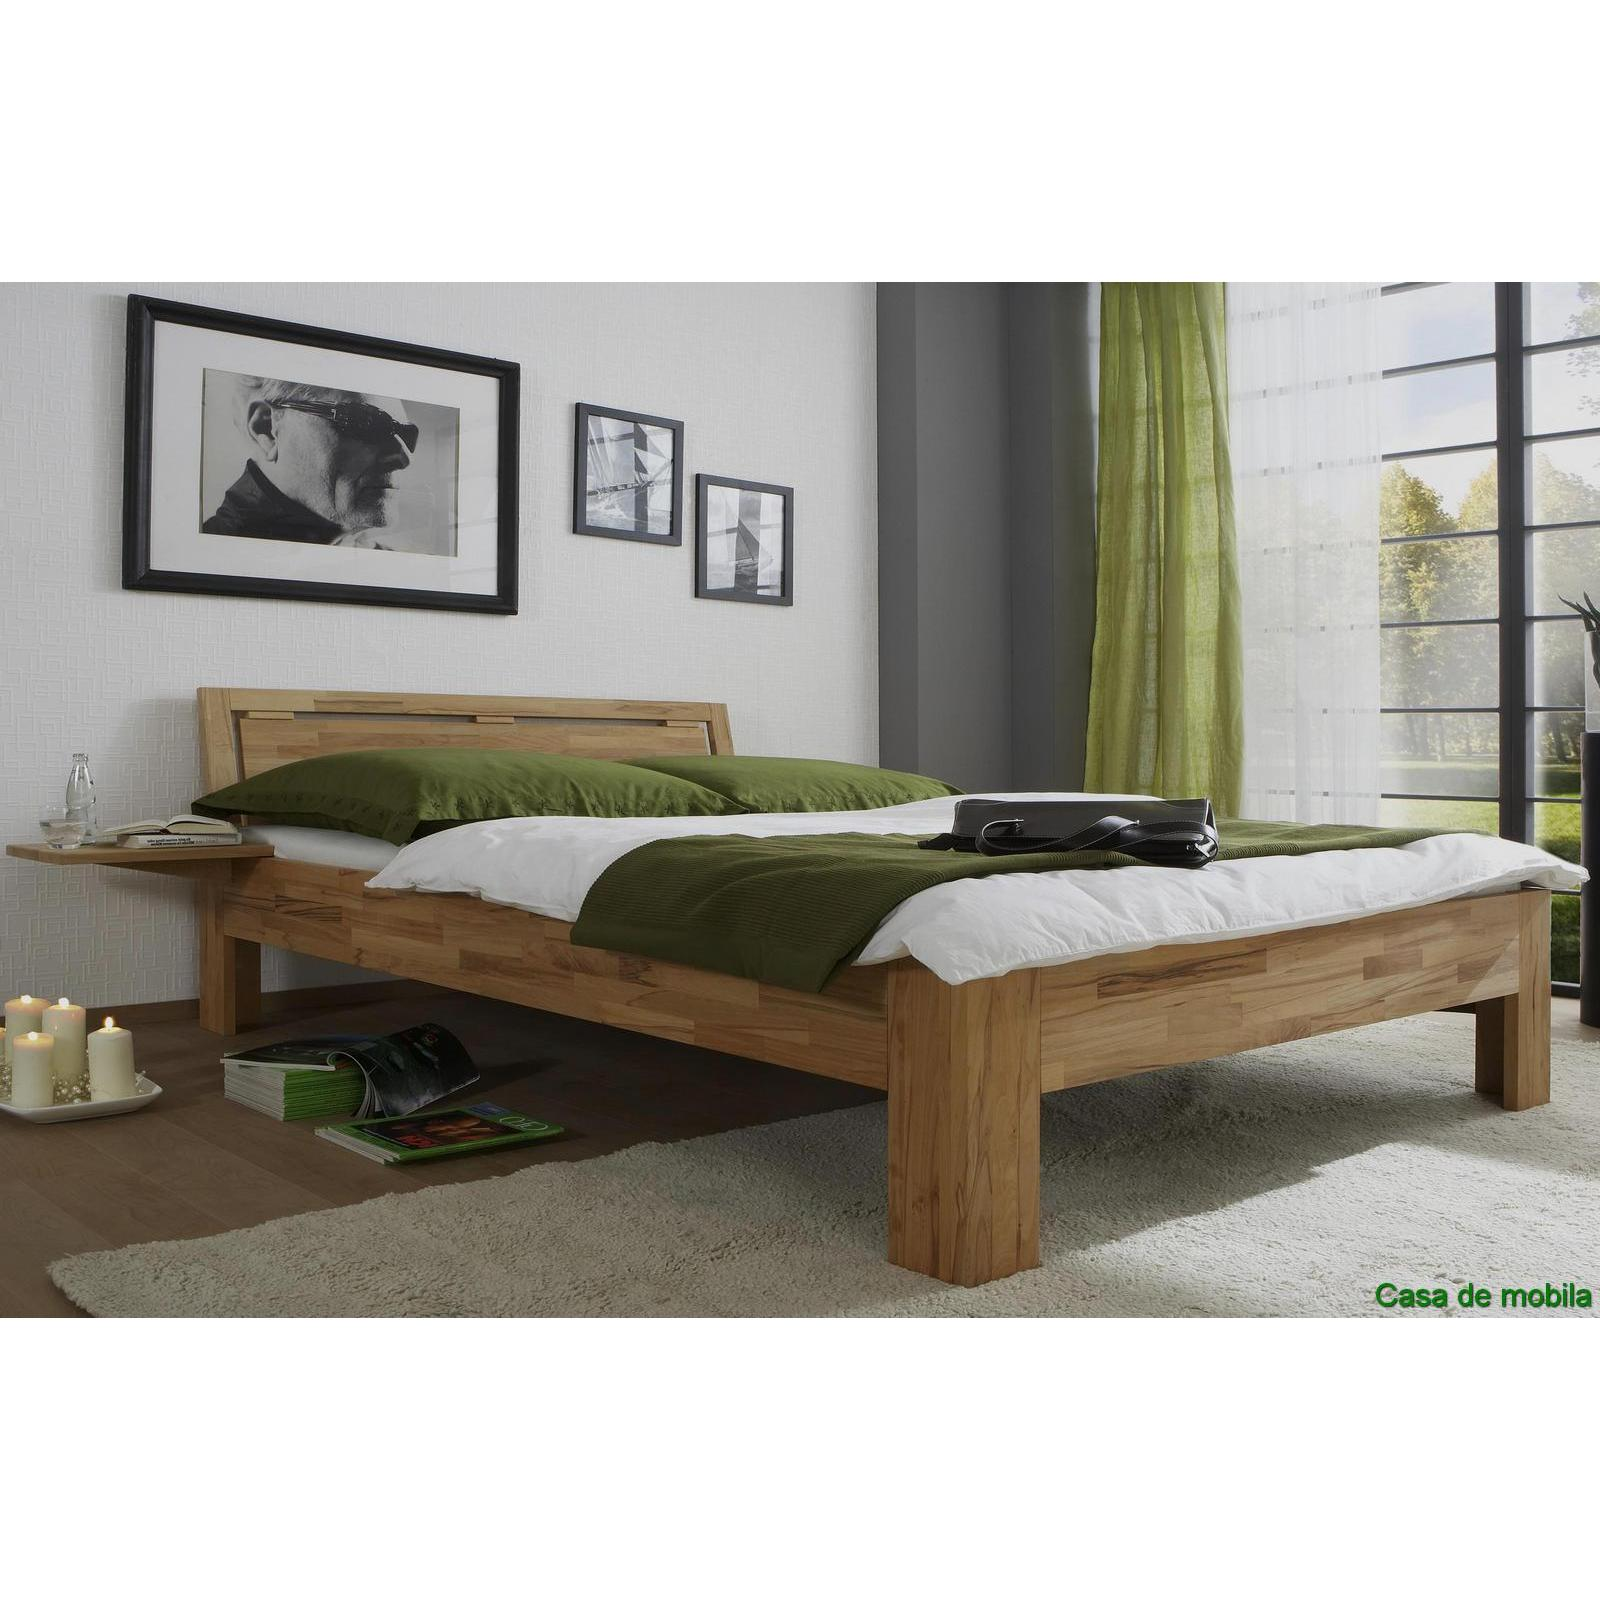 echtholz bett doppelbett 160x200 kernbuche massiv ge lt. Black Bedroom Furniture Sets. Home Design Ideas